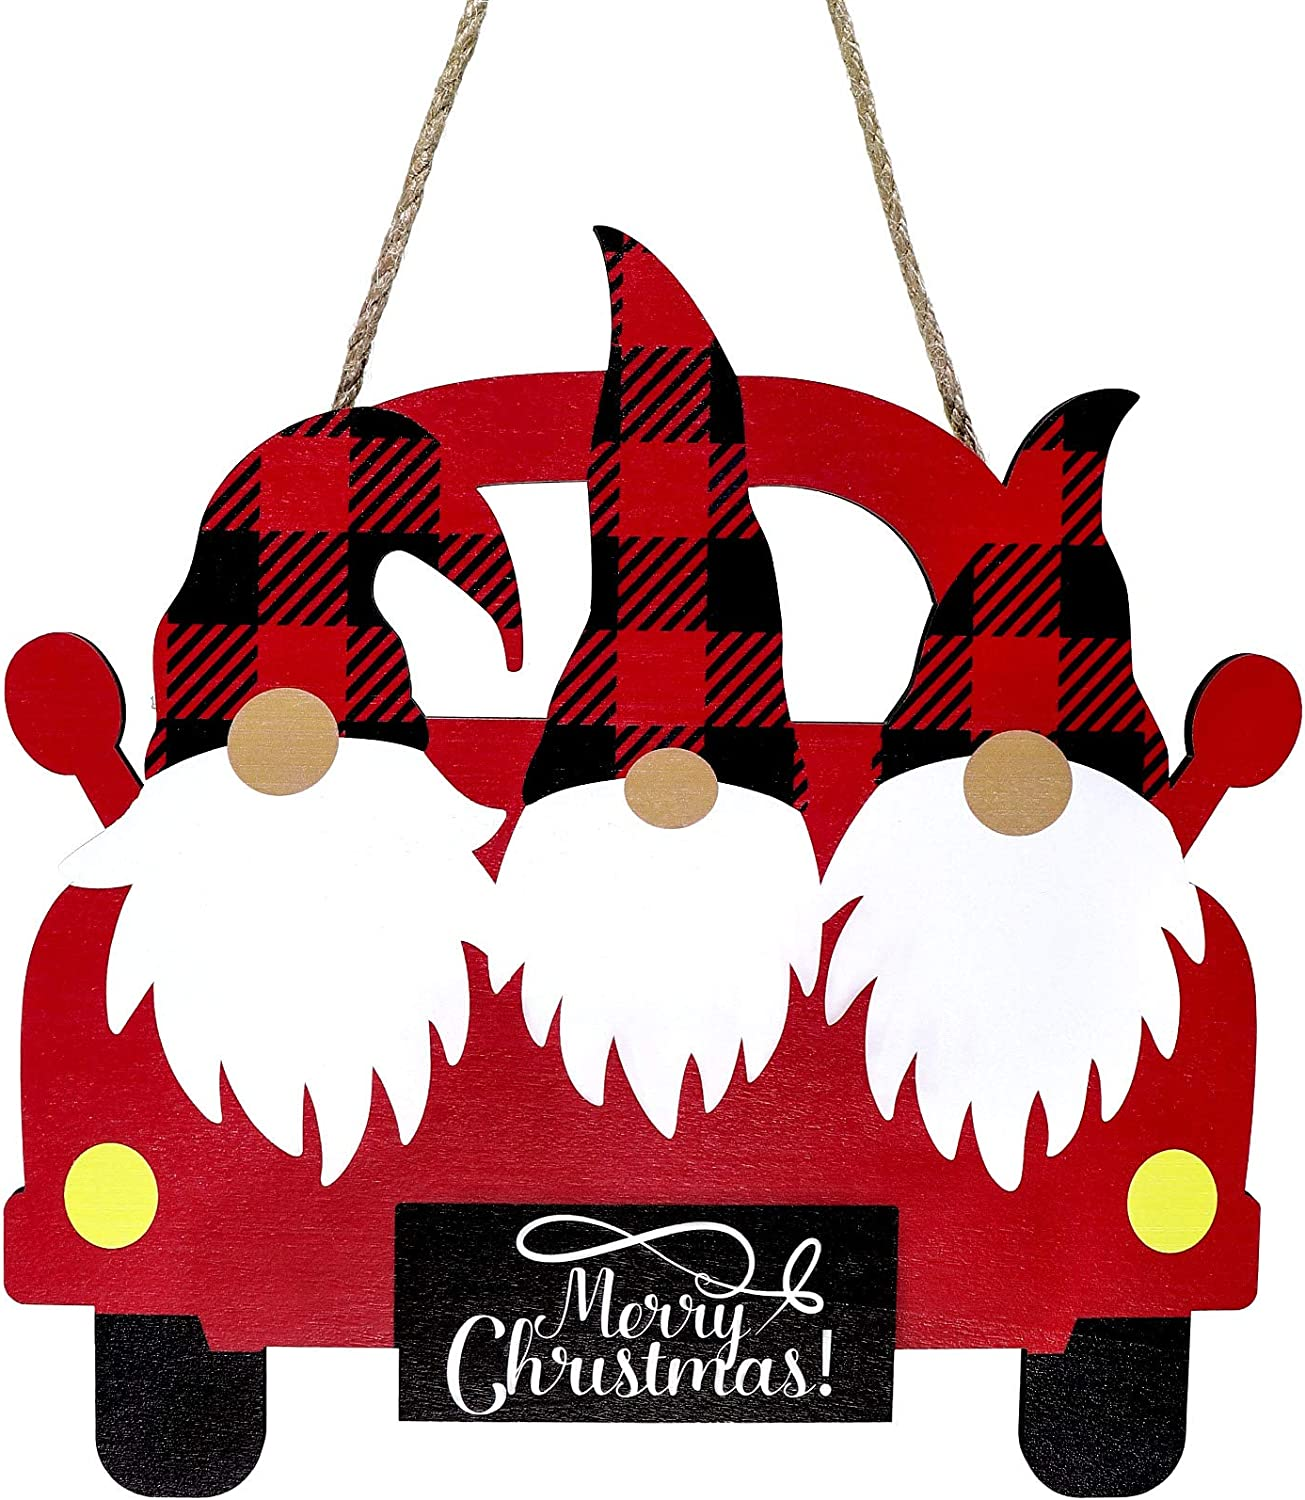 Christmas Truck Wooden Hanging Sign Red Truck Christmas Home Sign Christmas Vintage Farm Truck Wooden Sign Buffalo Plaid Gnome Wooden Hanging Decor for Home Coffee Wall Indoor Decor